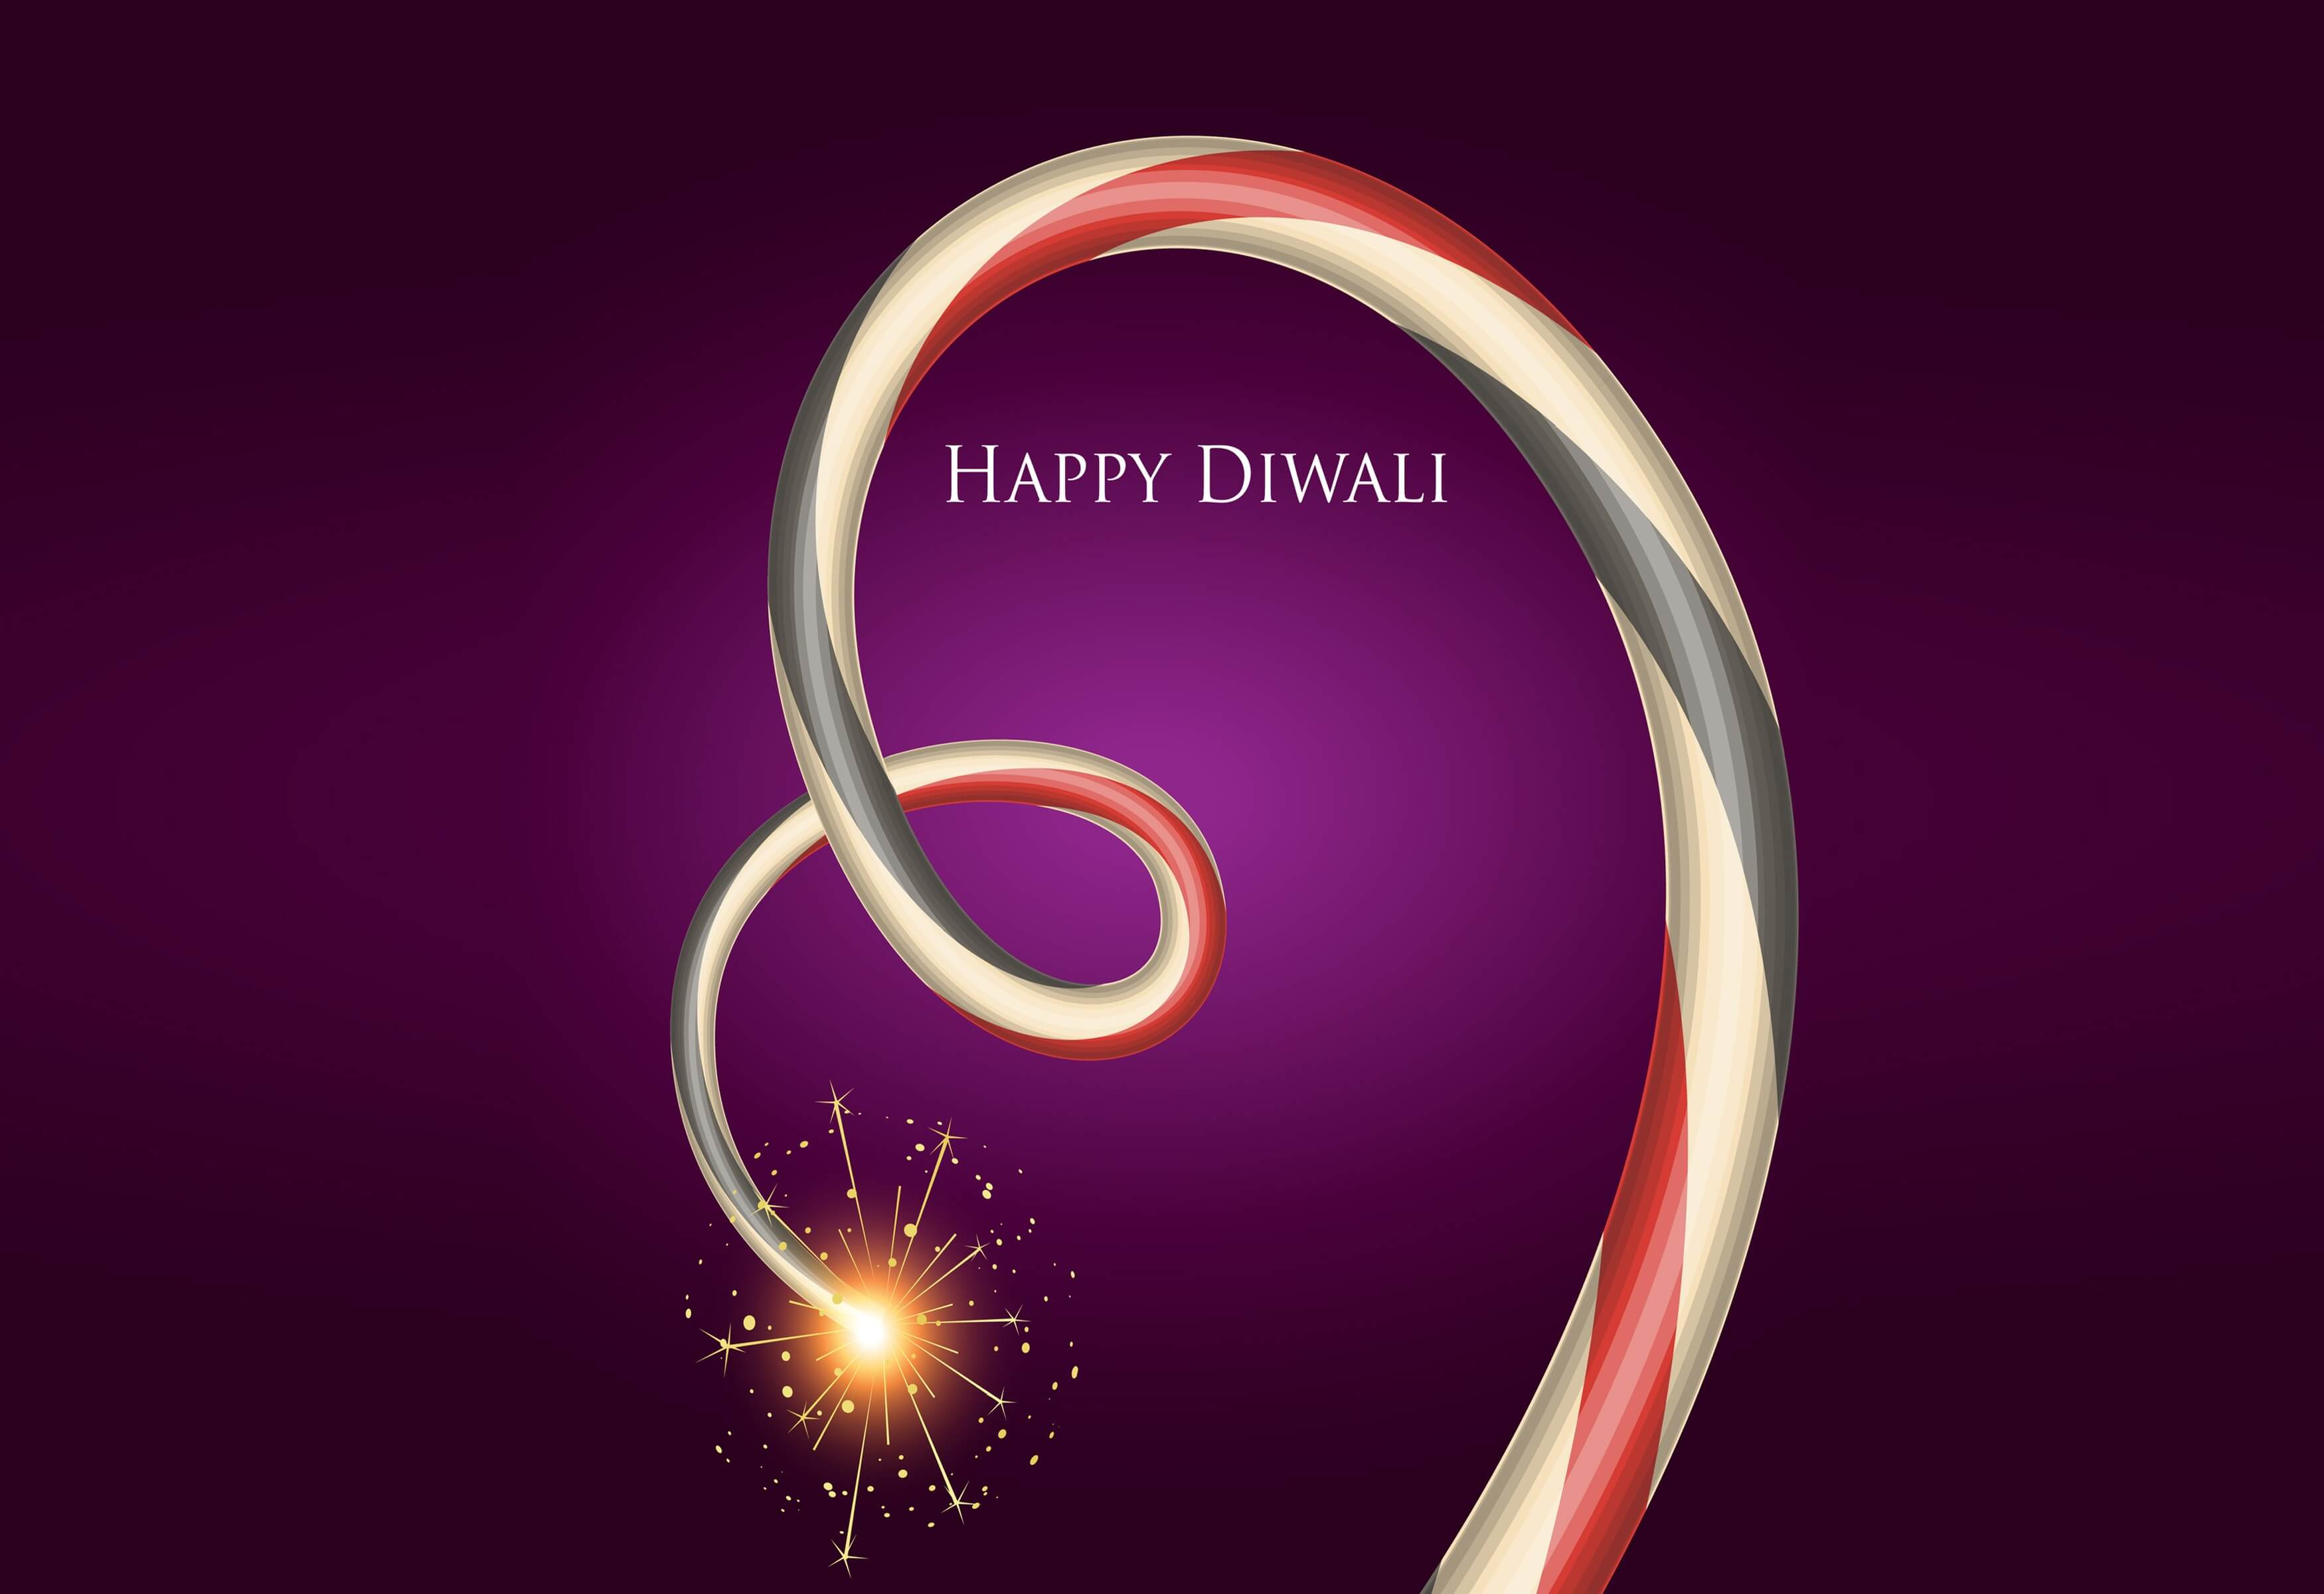 happy diwali wishes firework hd image wallpaper